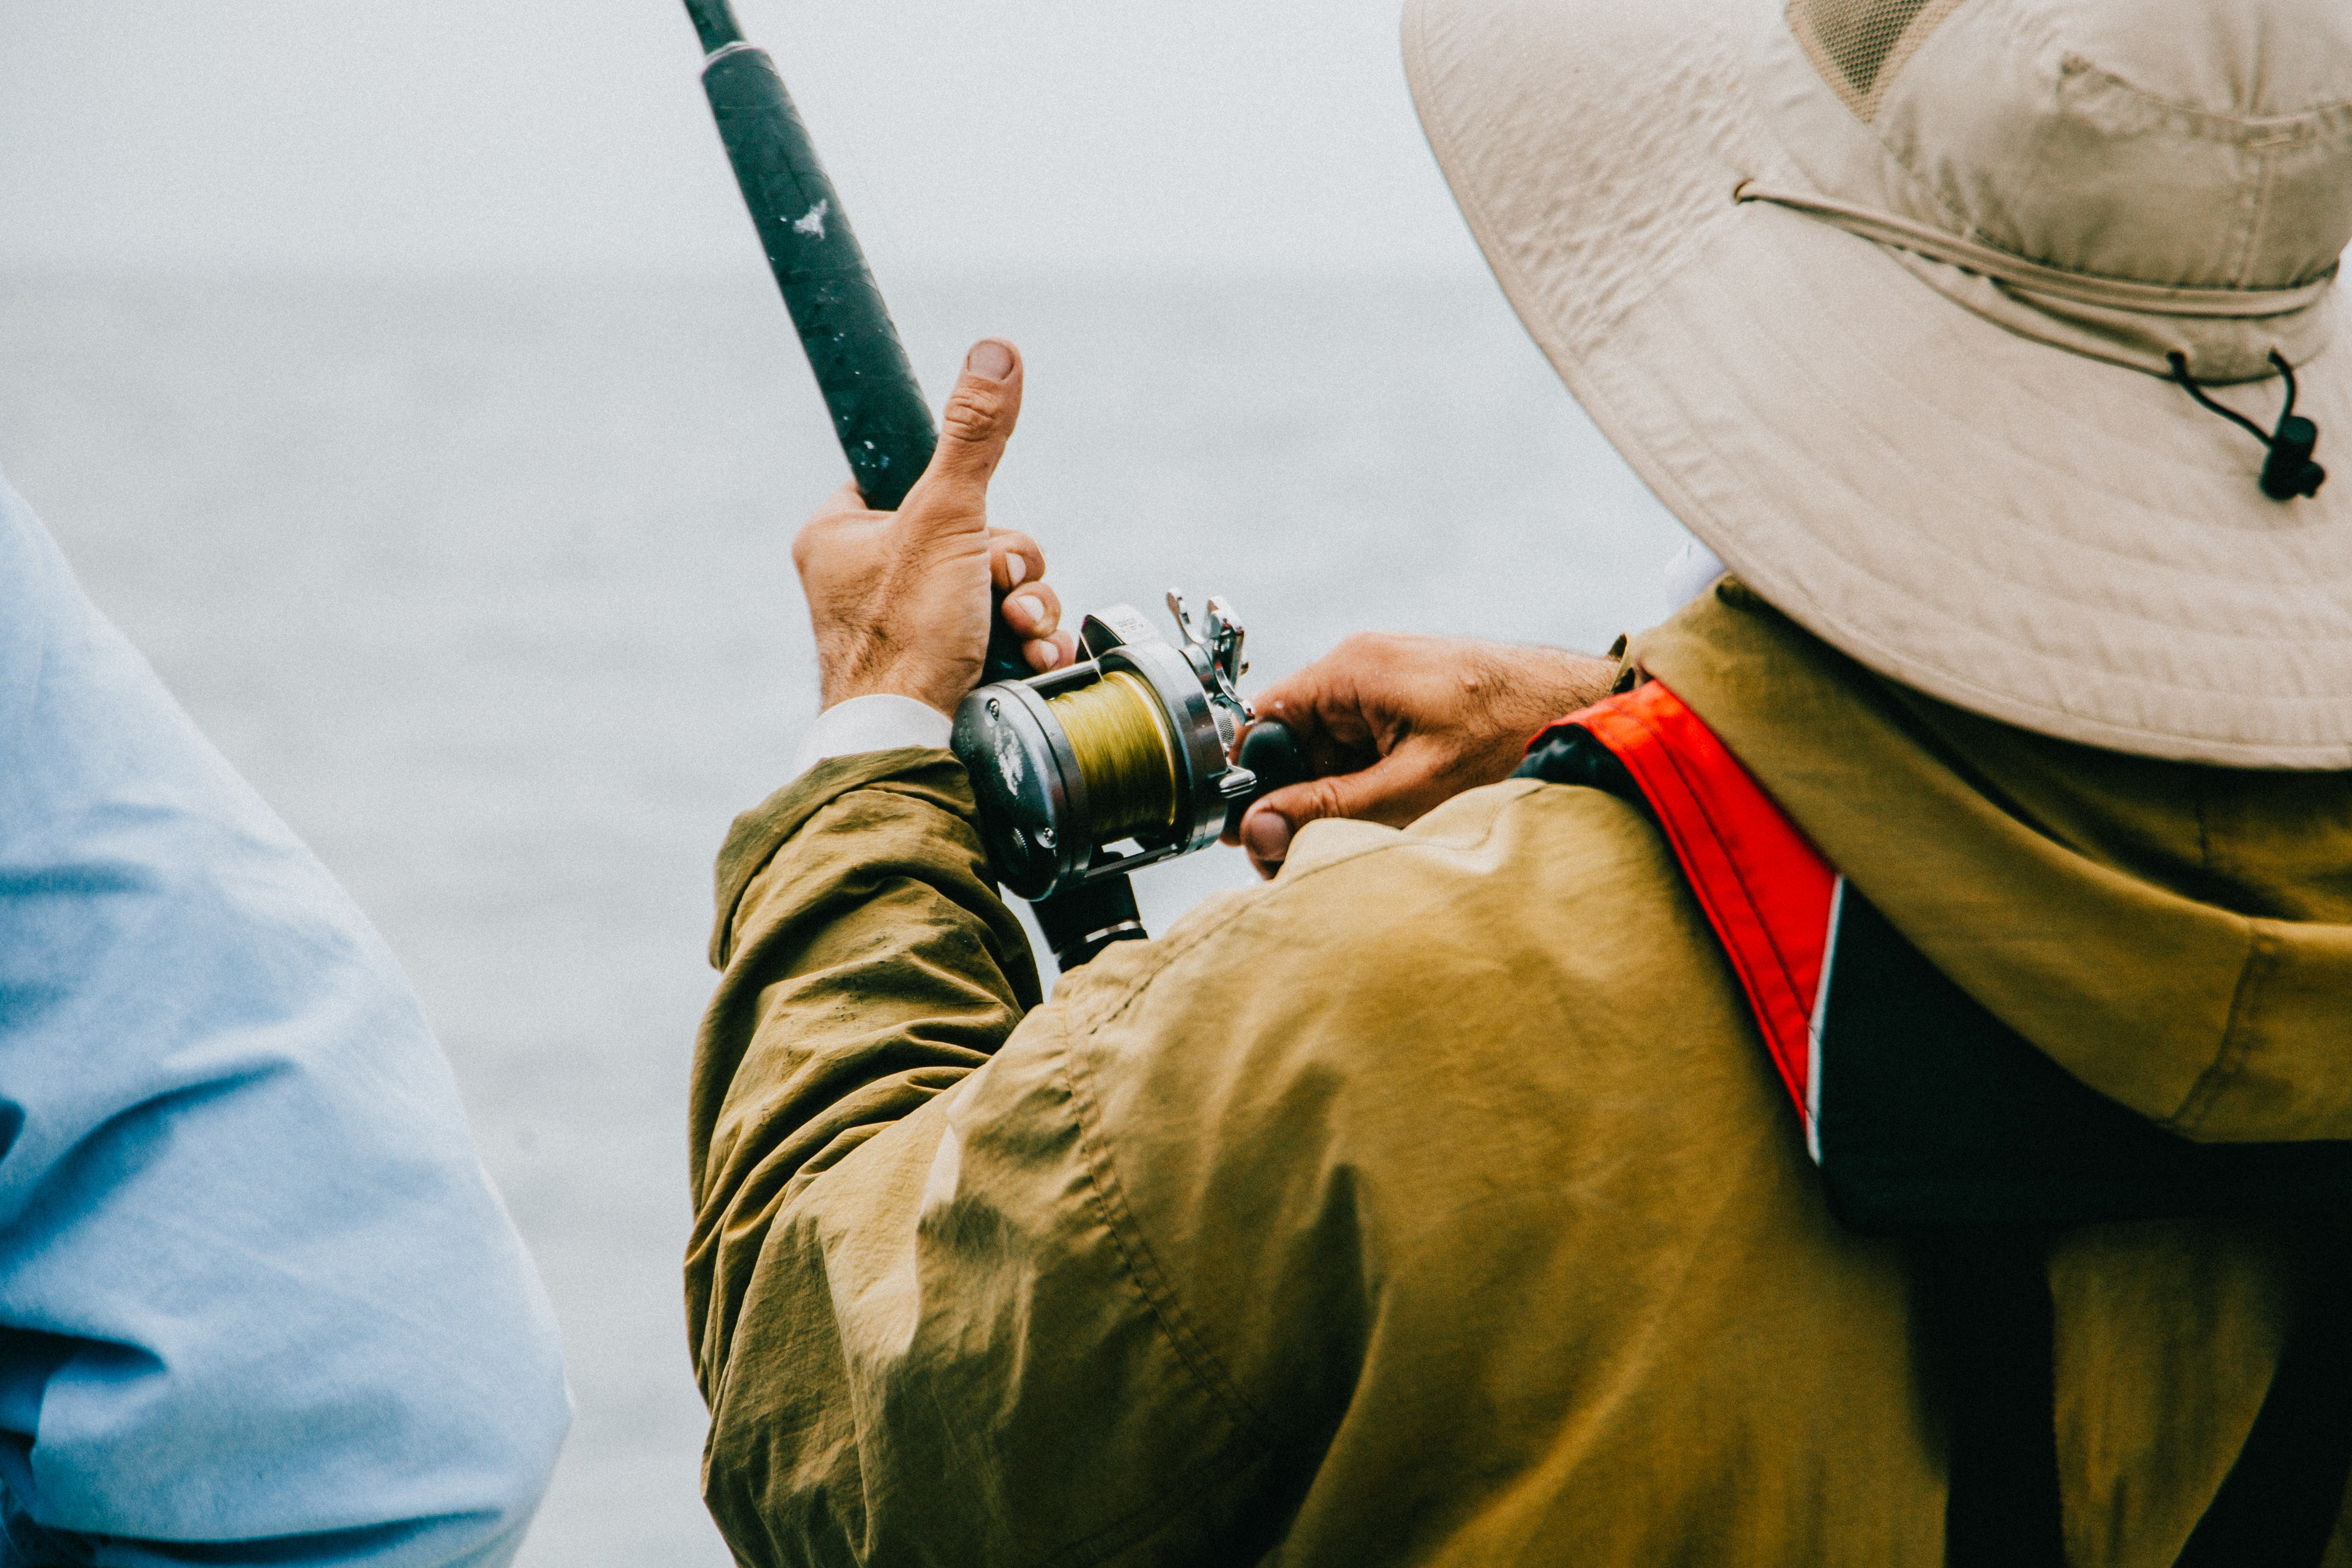 person holding black fishing rod